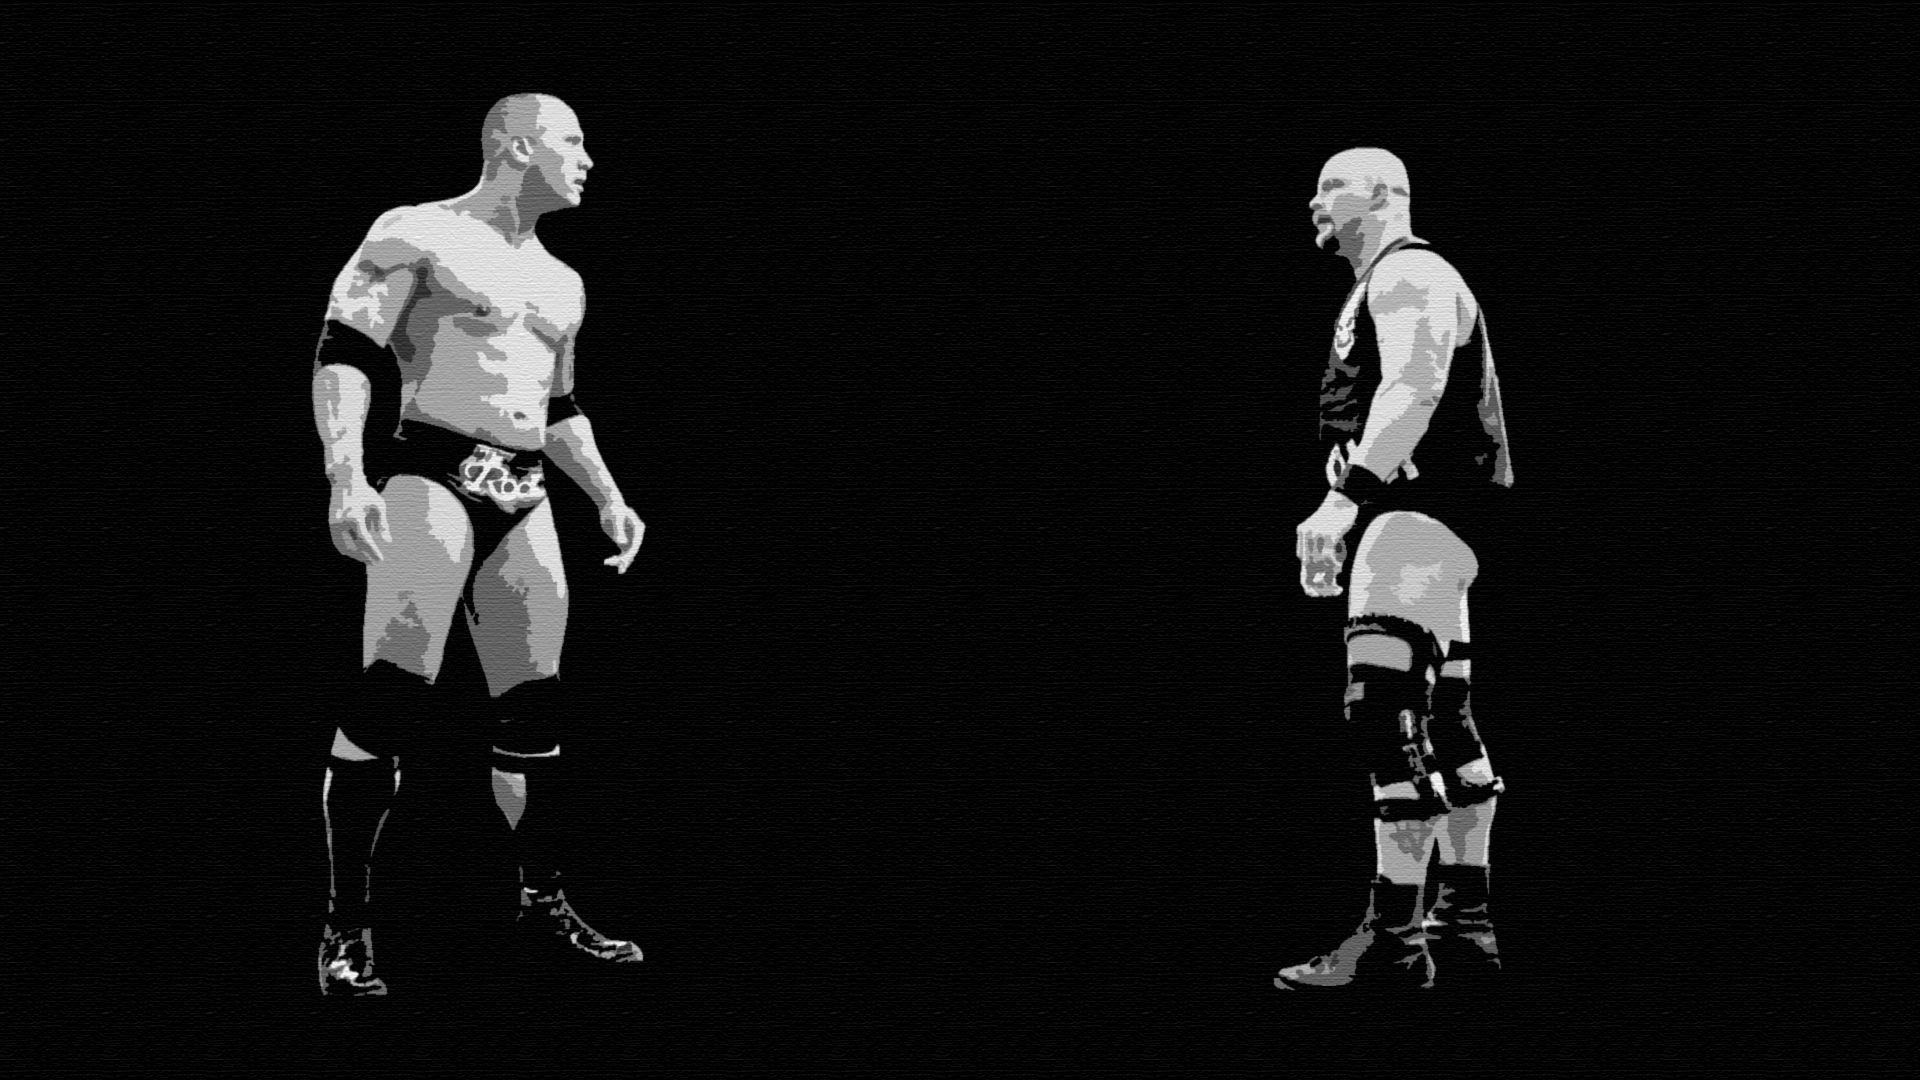 1920x1080 Wrestling Wallpapers